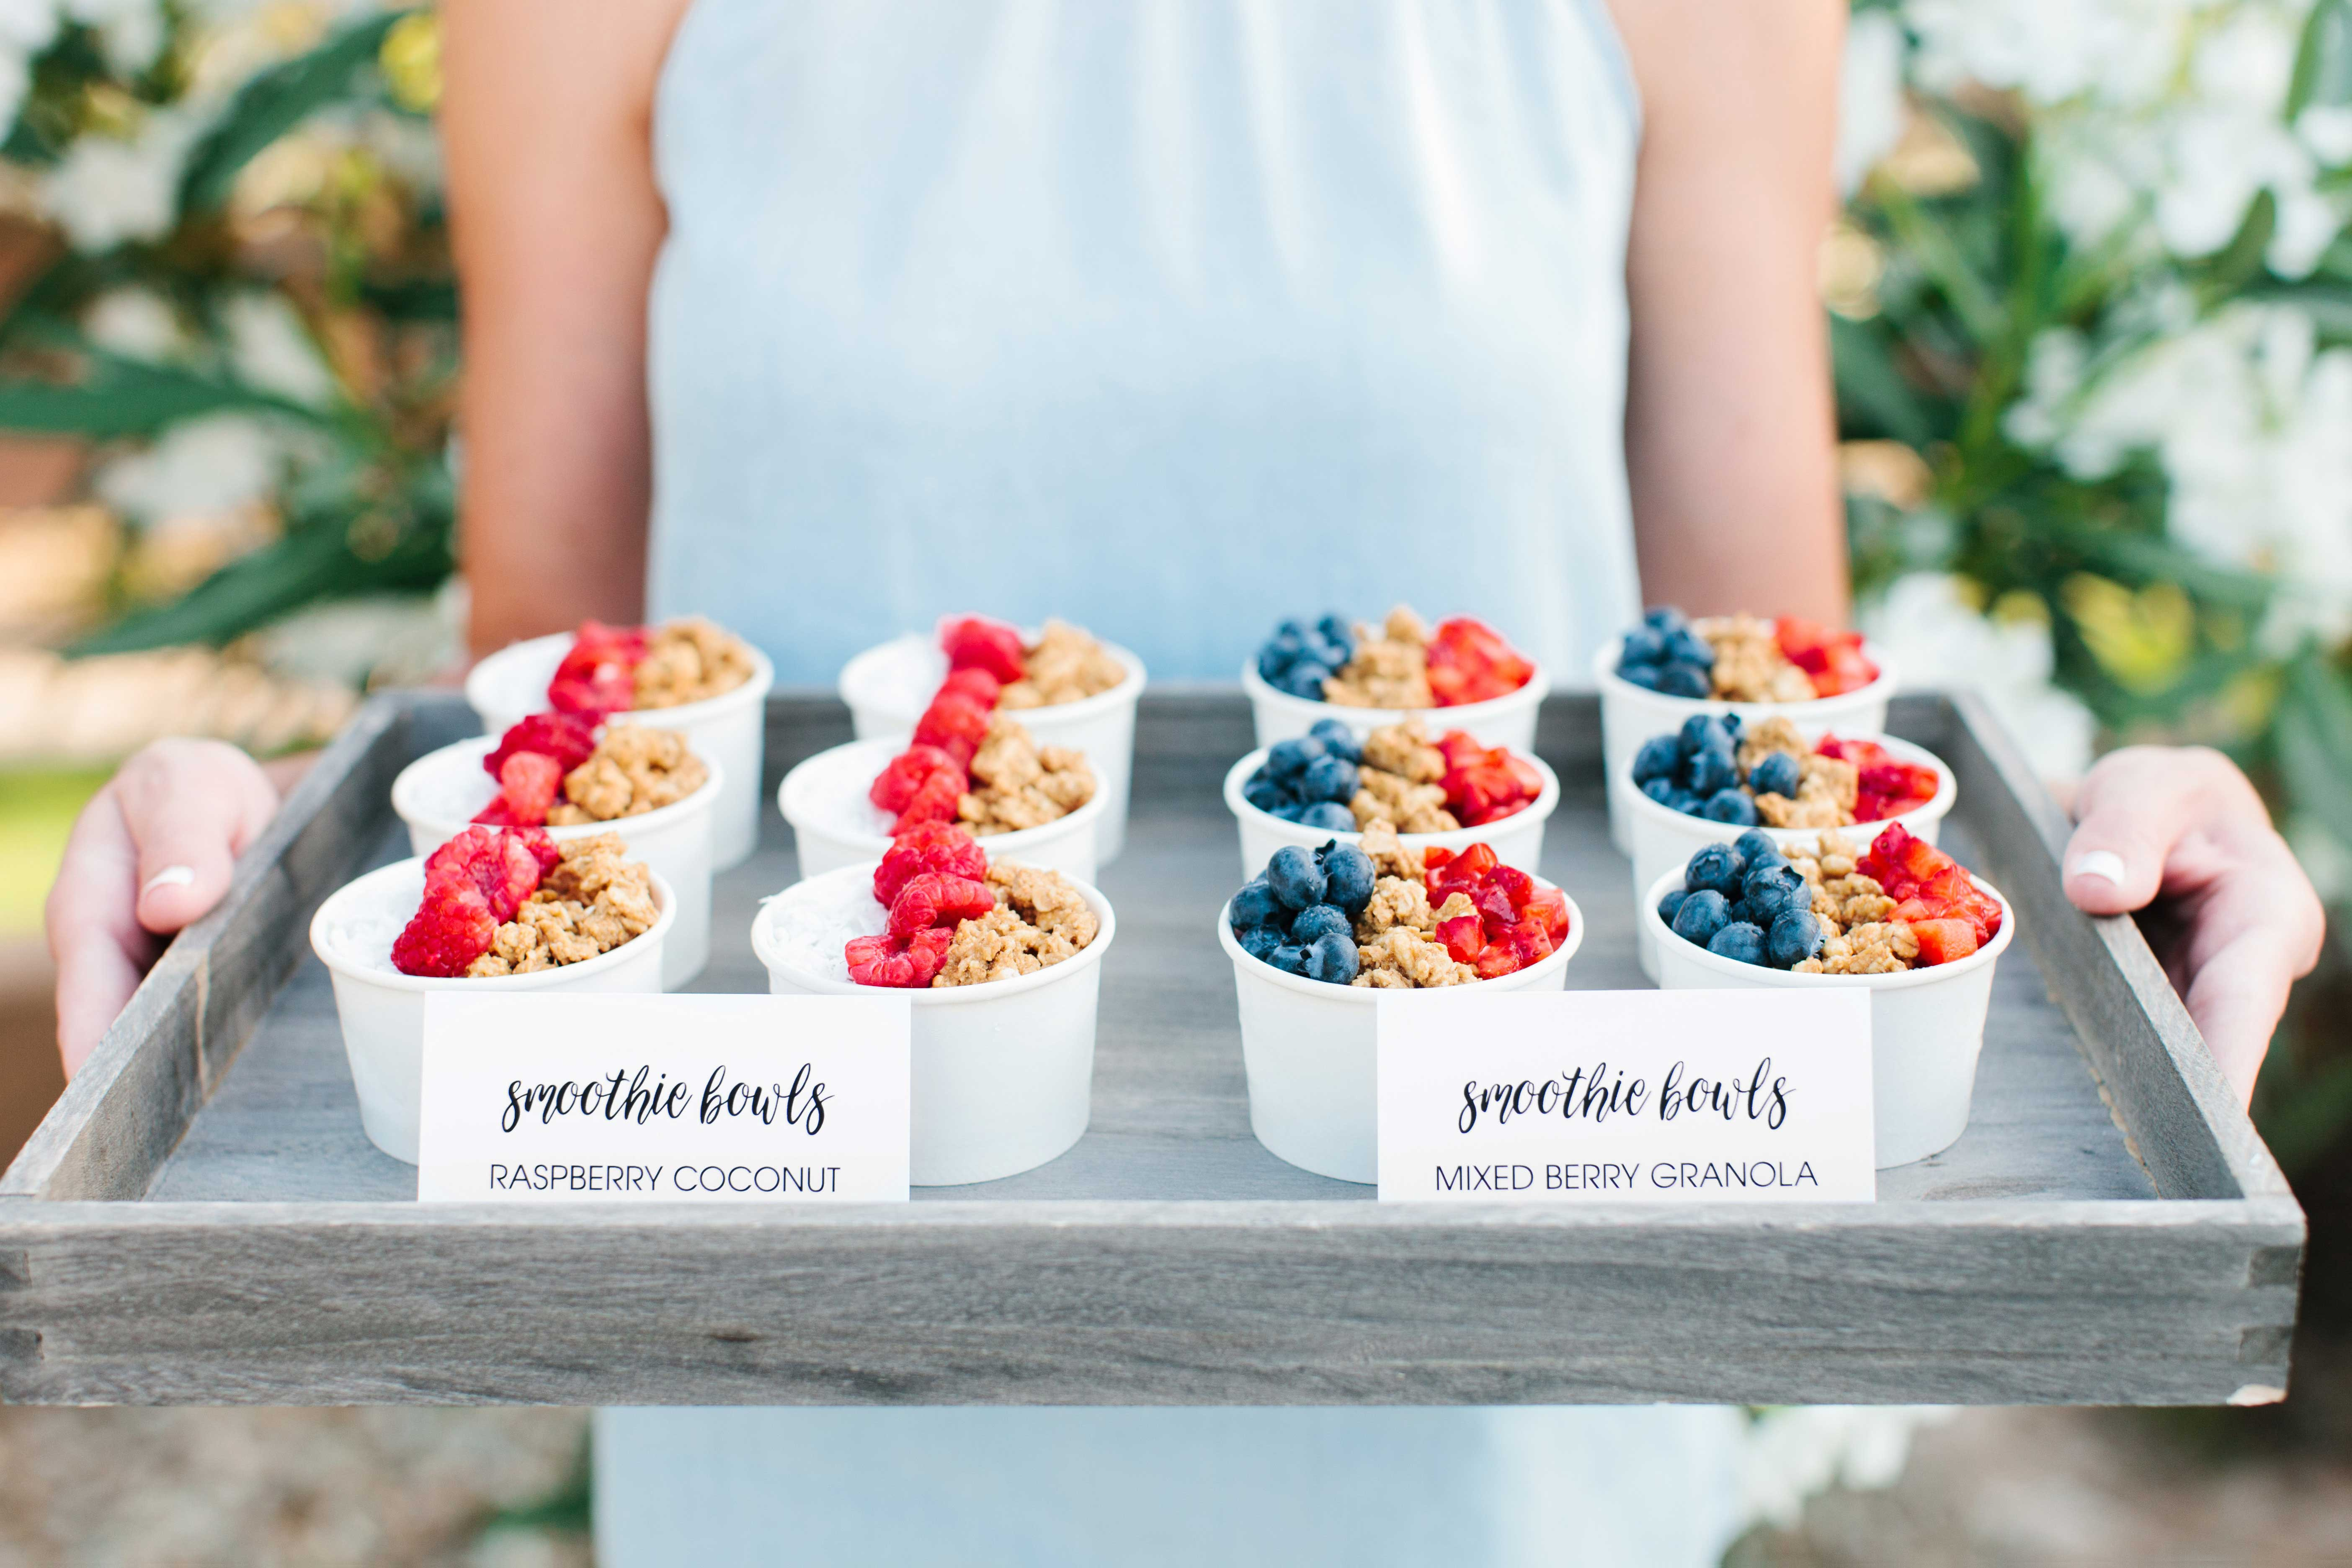 Raspberry coconut and mixed berry granola smoothie bowls on tray